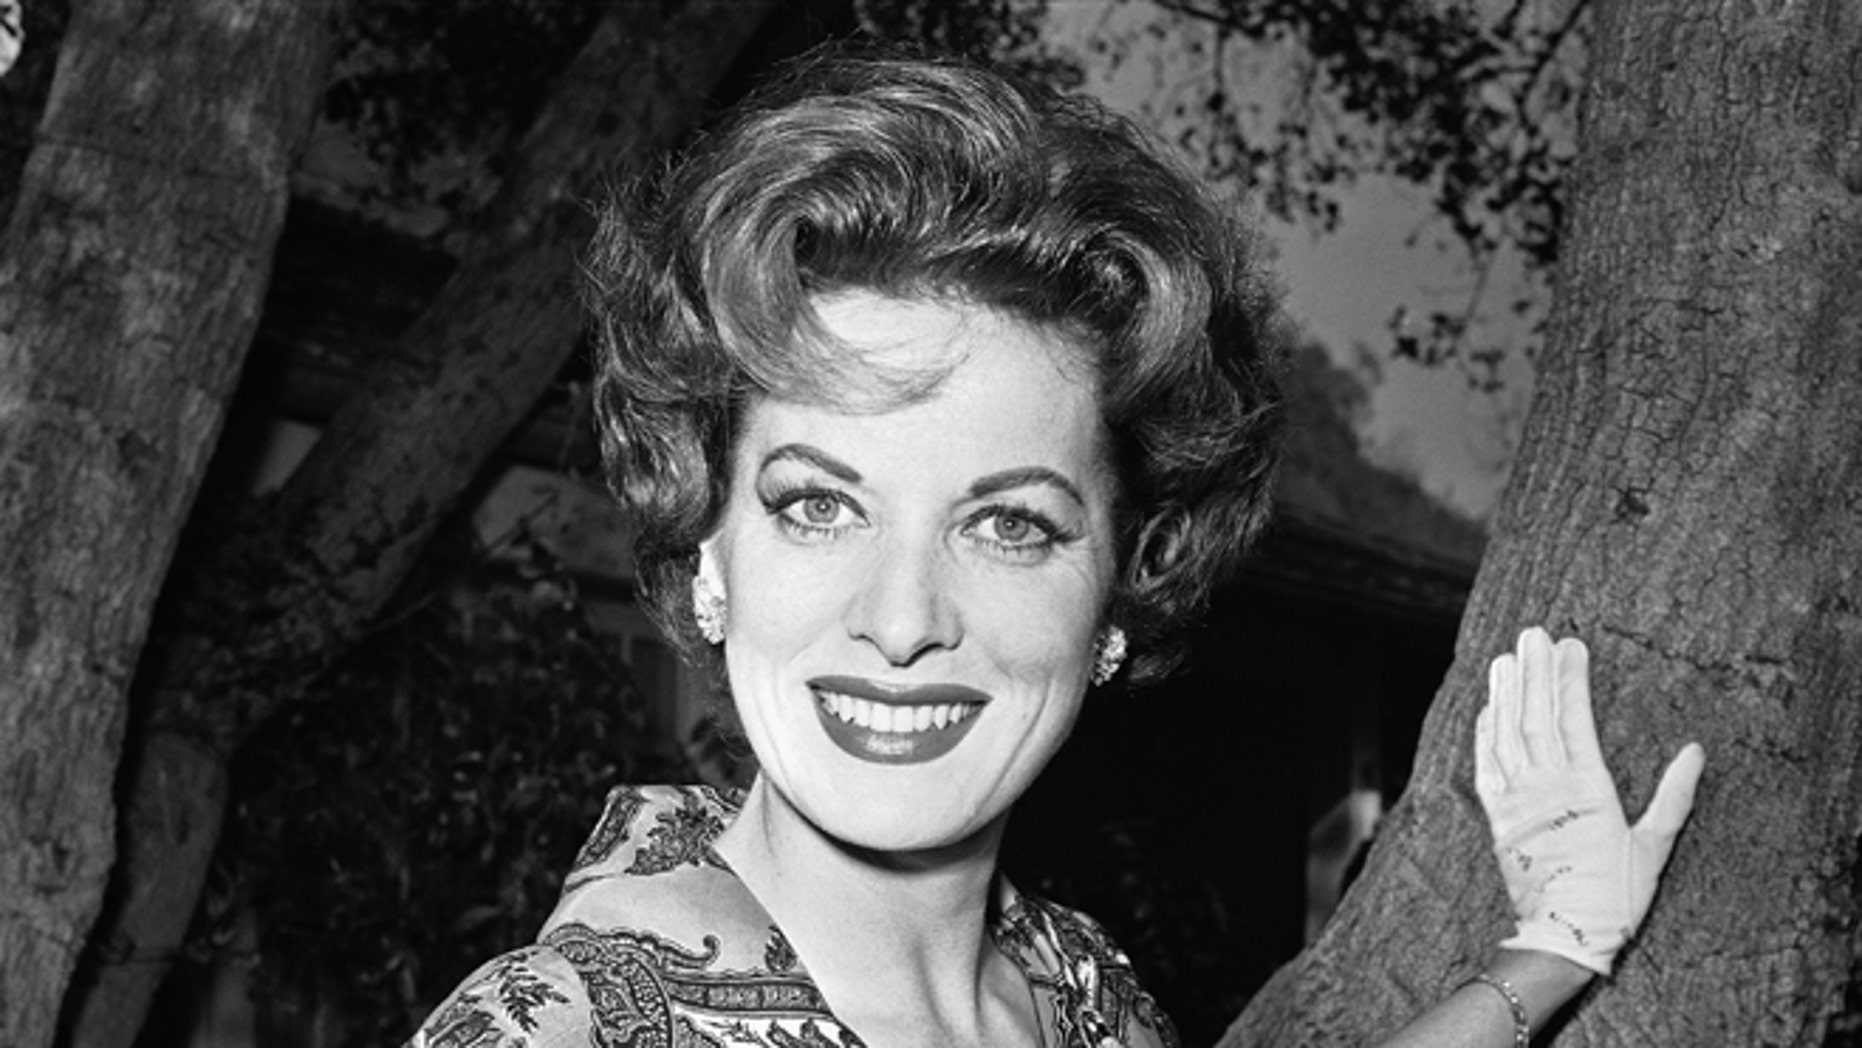 Jan. 19, 1960. Maureen O'Hara photographed in her front yard in Los Angeles.